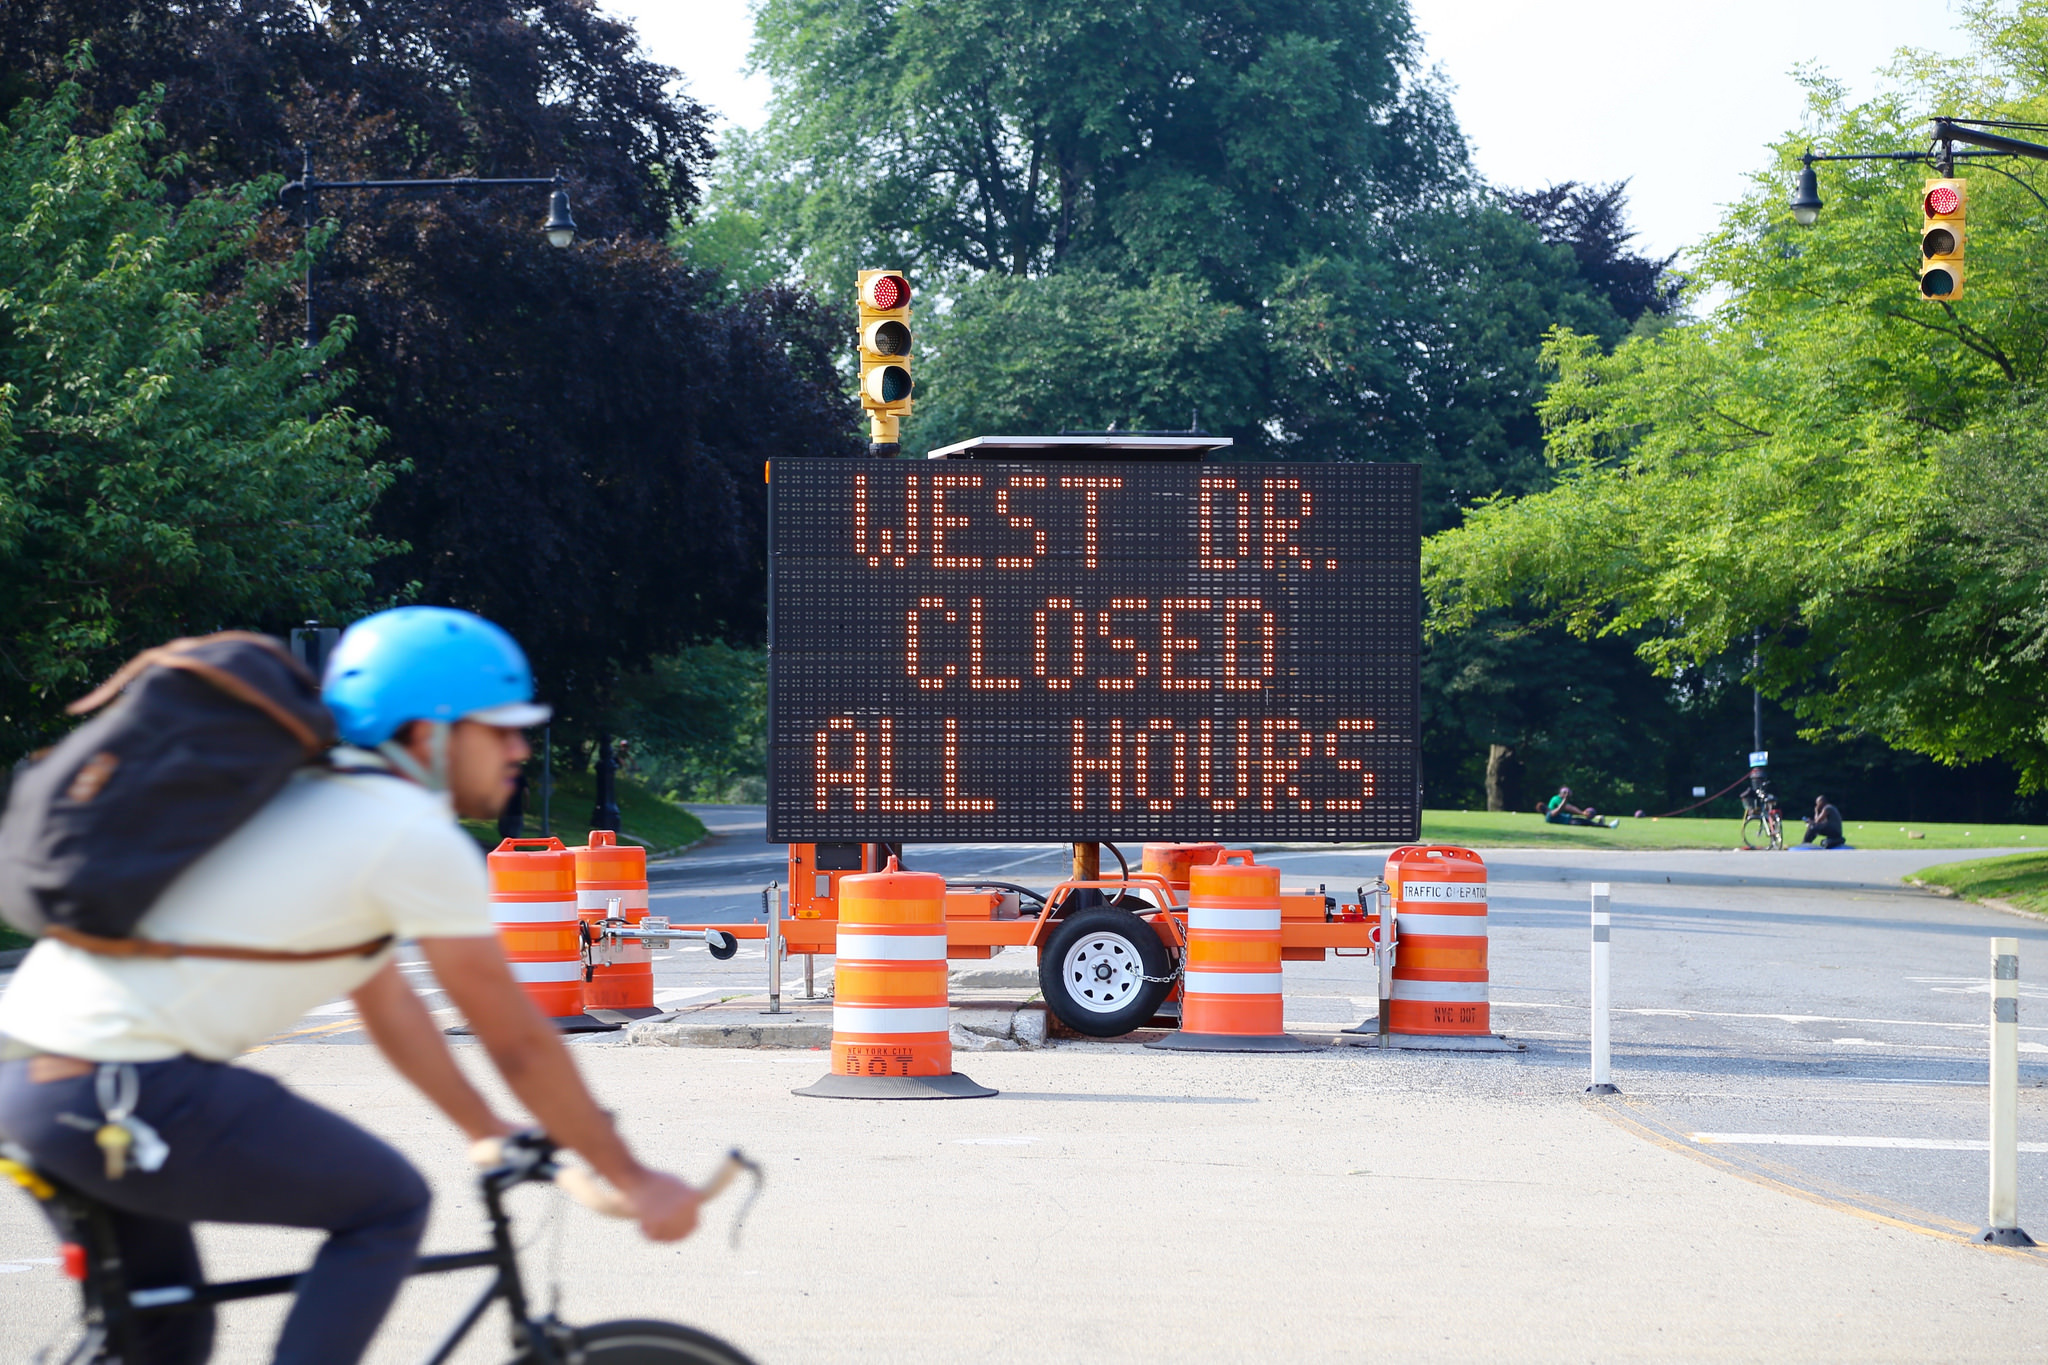 Prospect Park's West Drive closes permanently to car traffic starting today